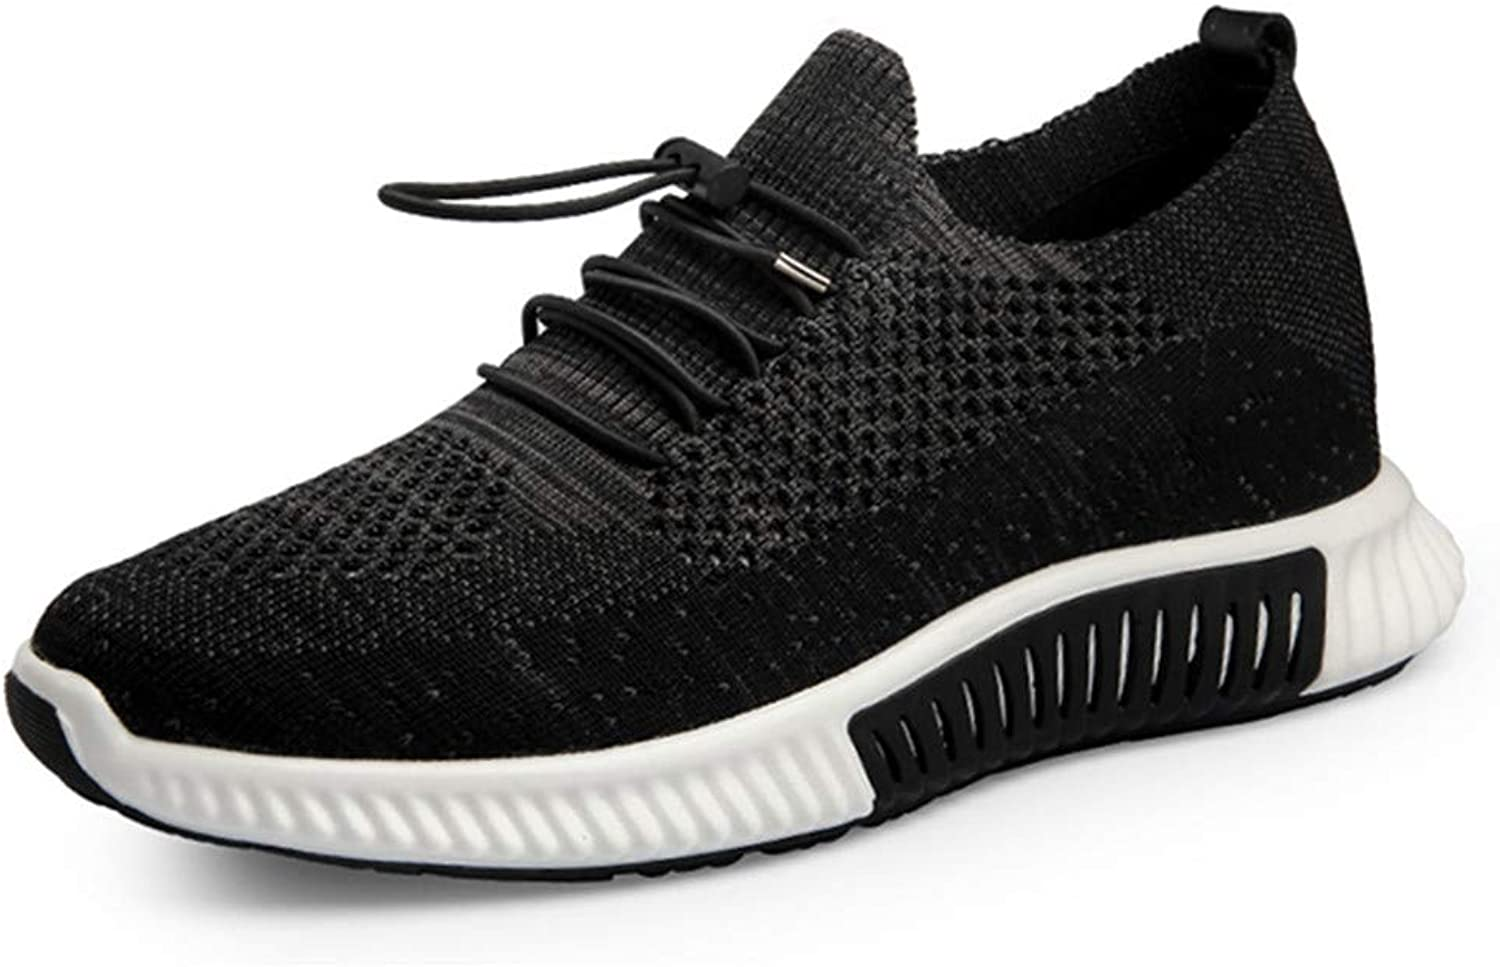 GOG Fashion Flying Woven Hollow Breathable Sport Sneakers Height Increasing Elevator 2.56 inches shoes for Short Men